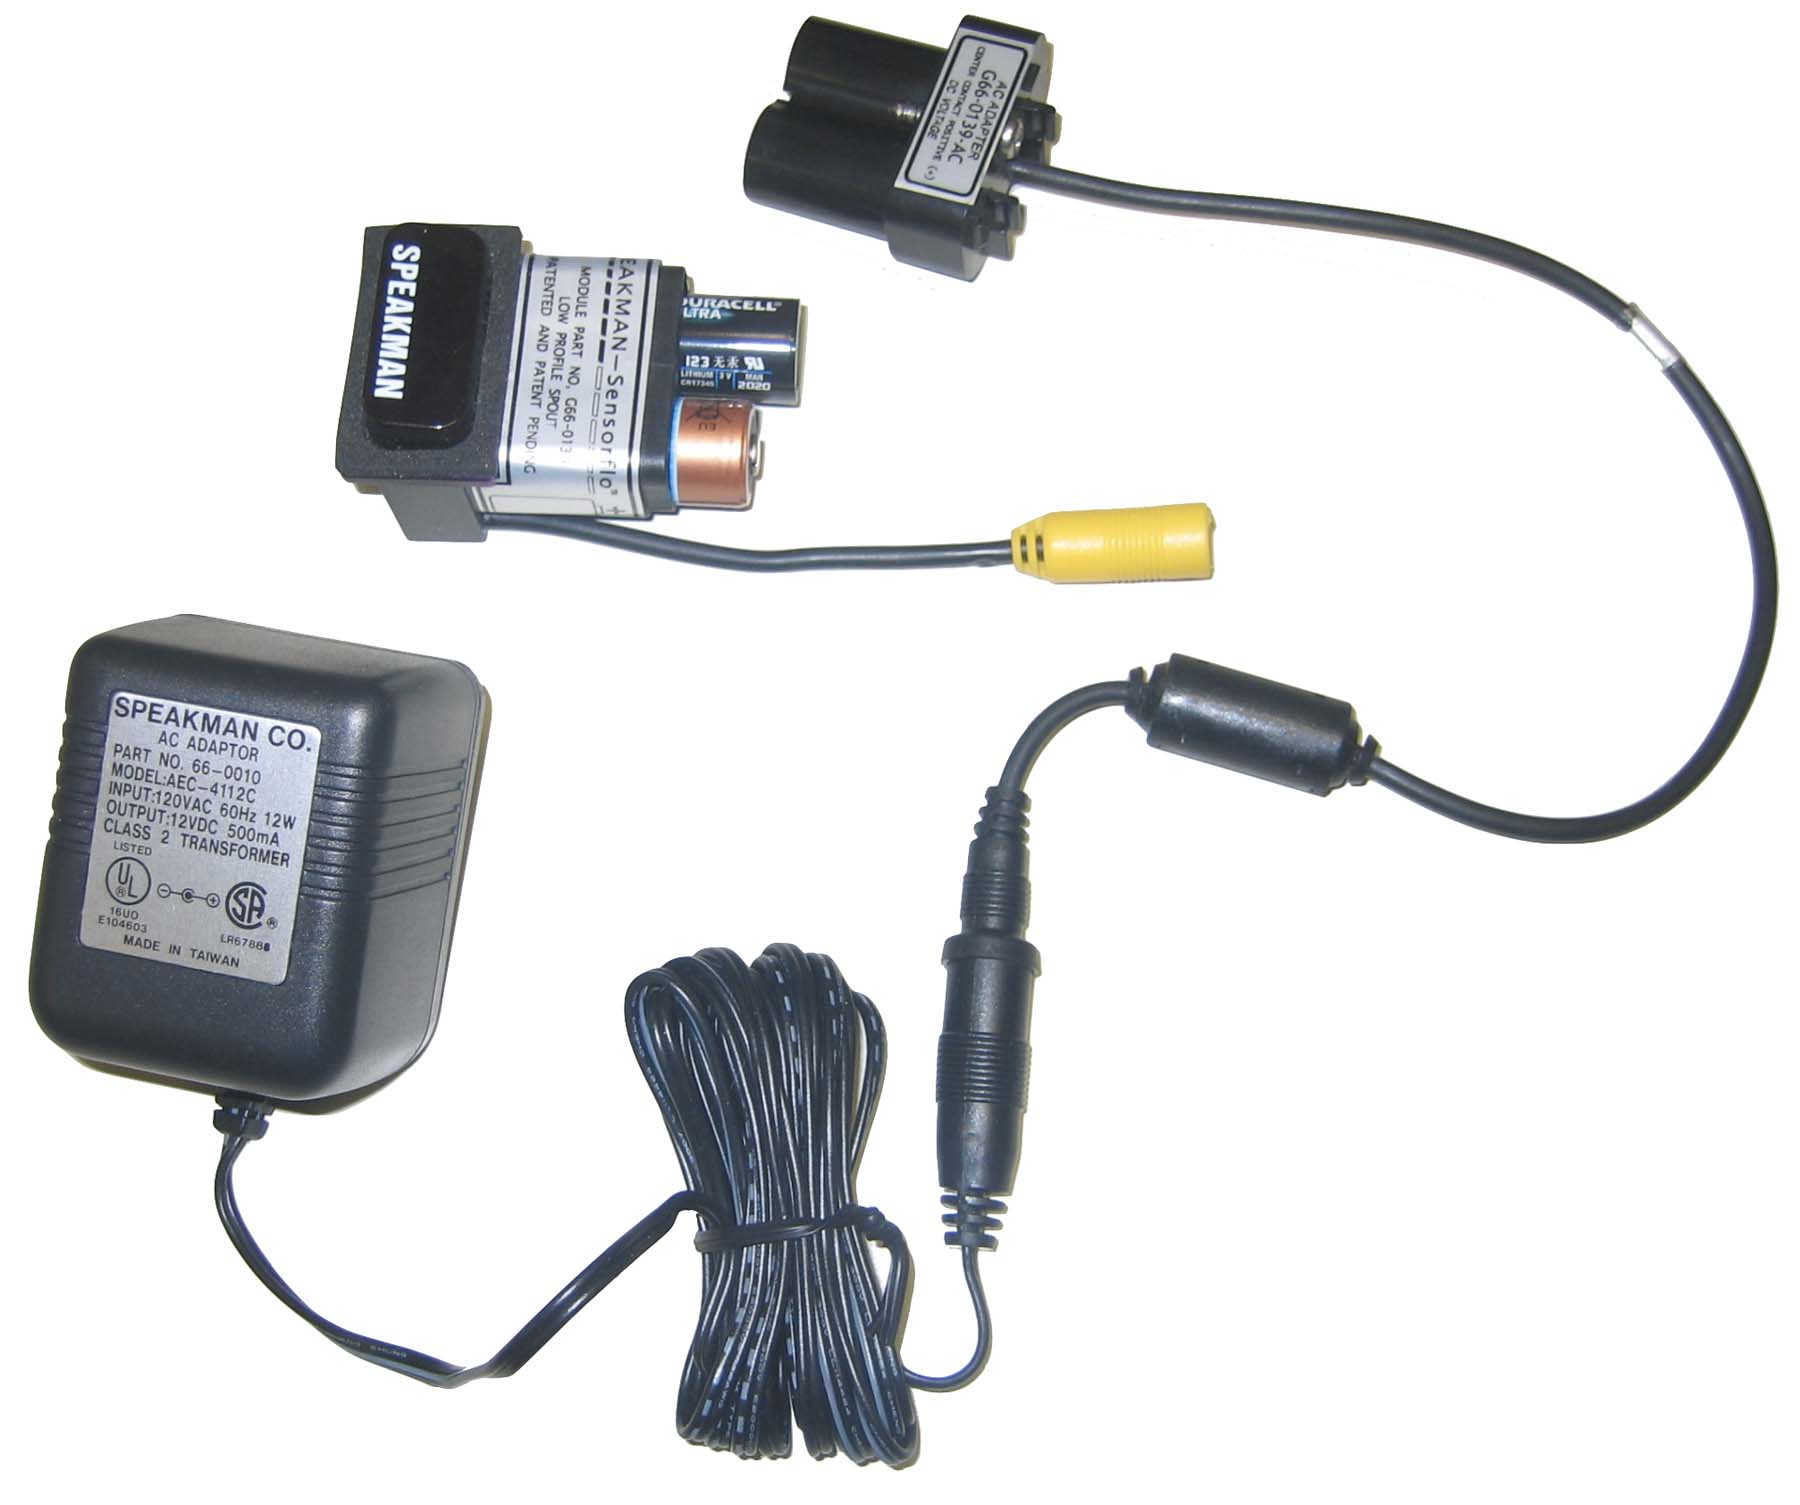 1084113428ac_adapter_kit-small.png